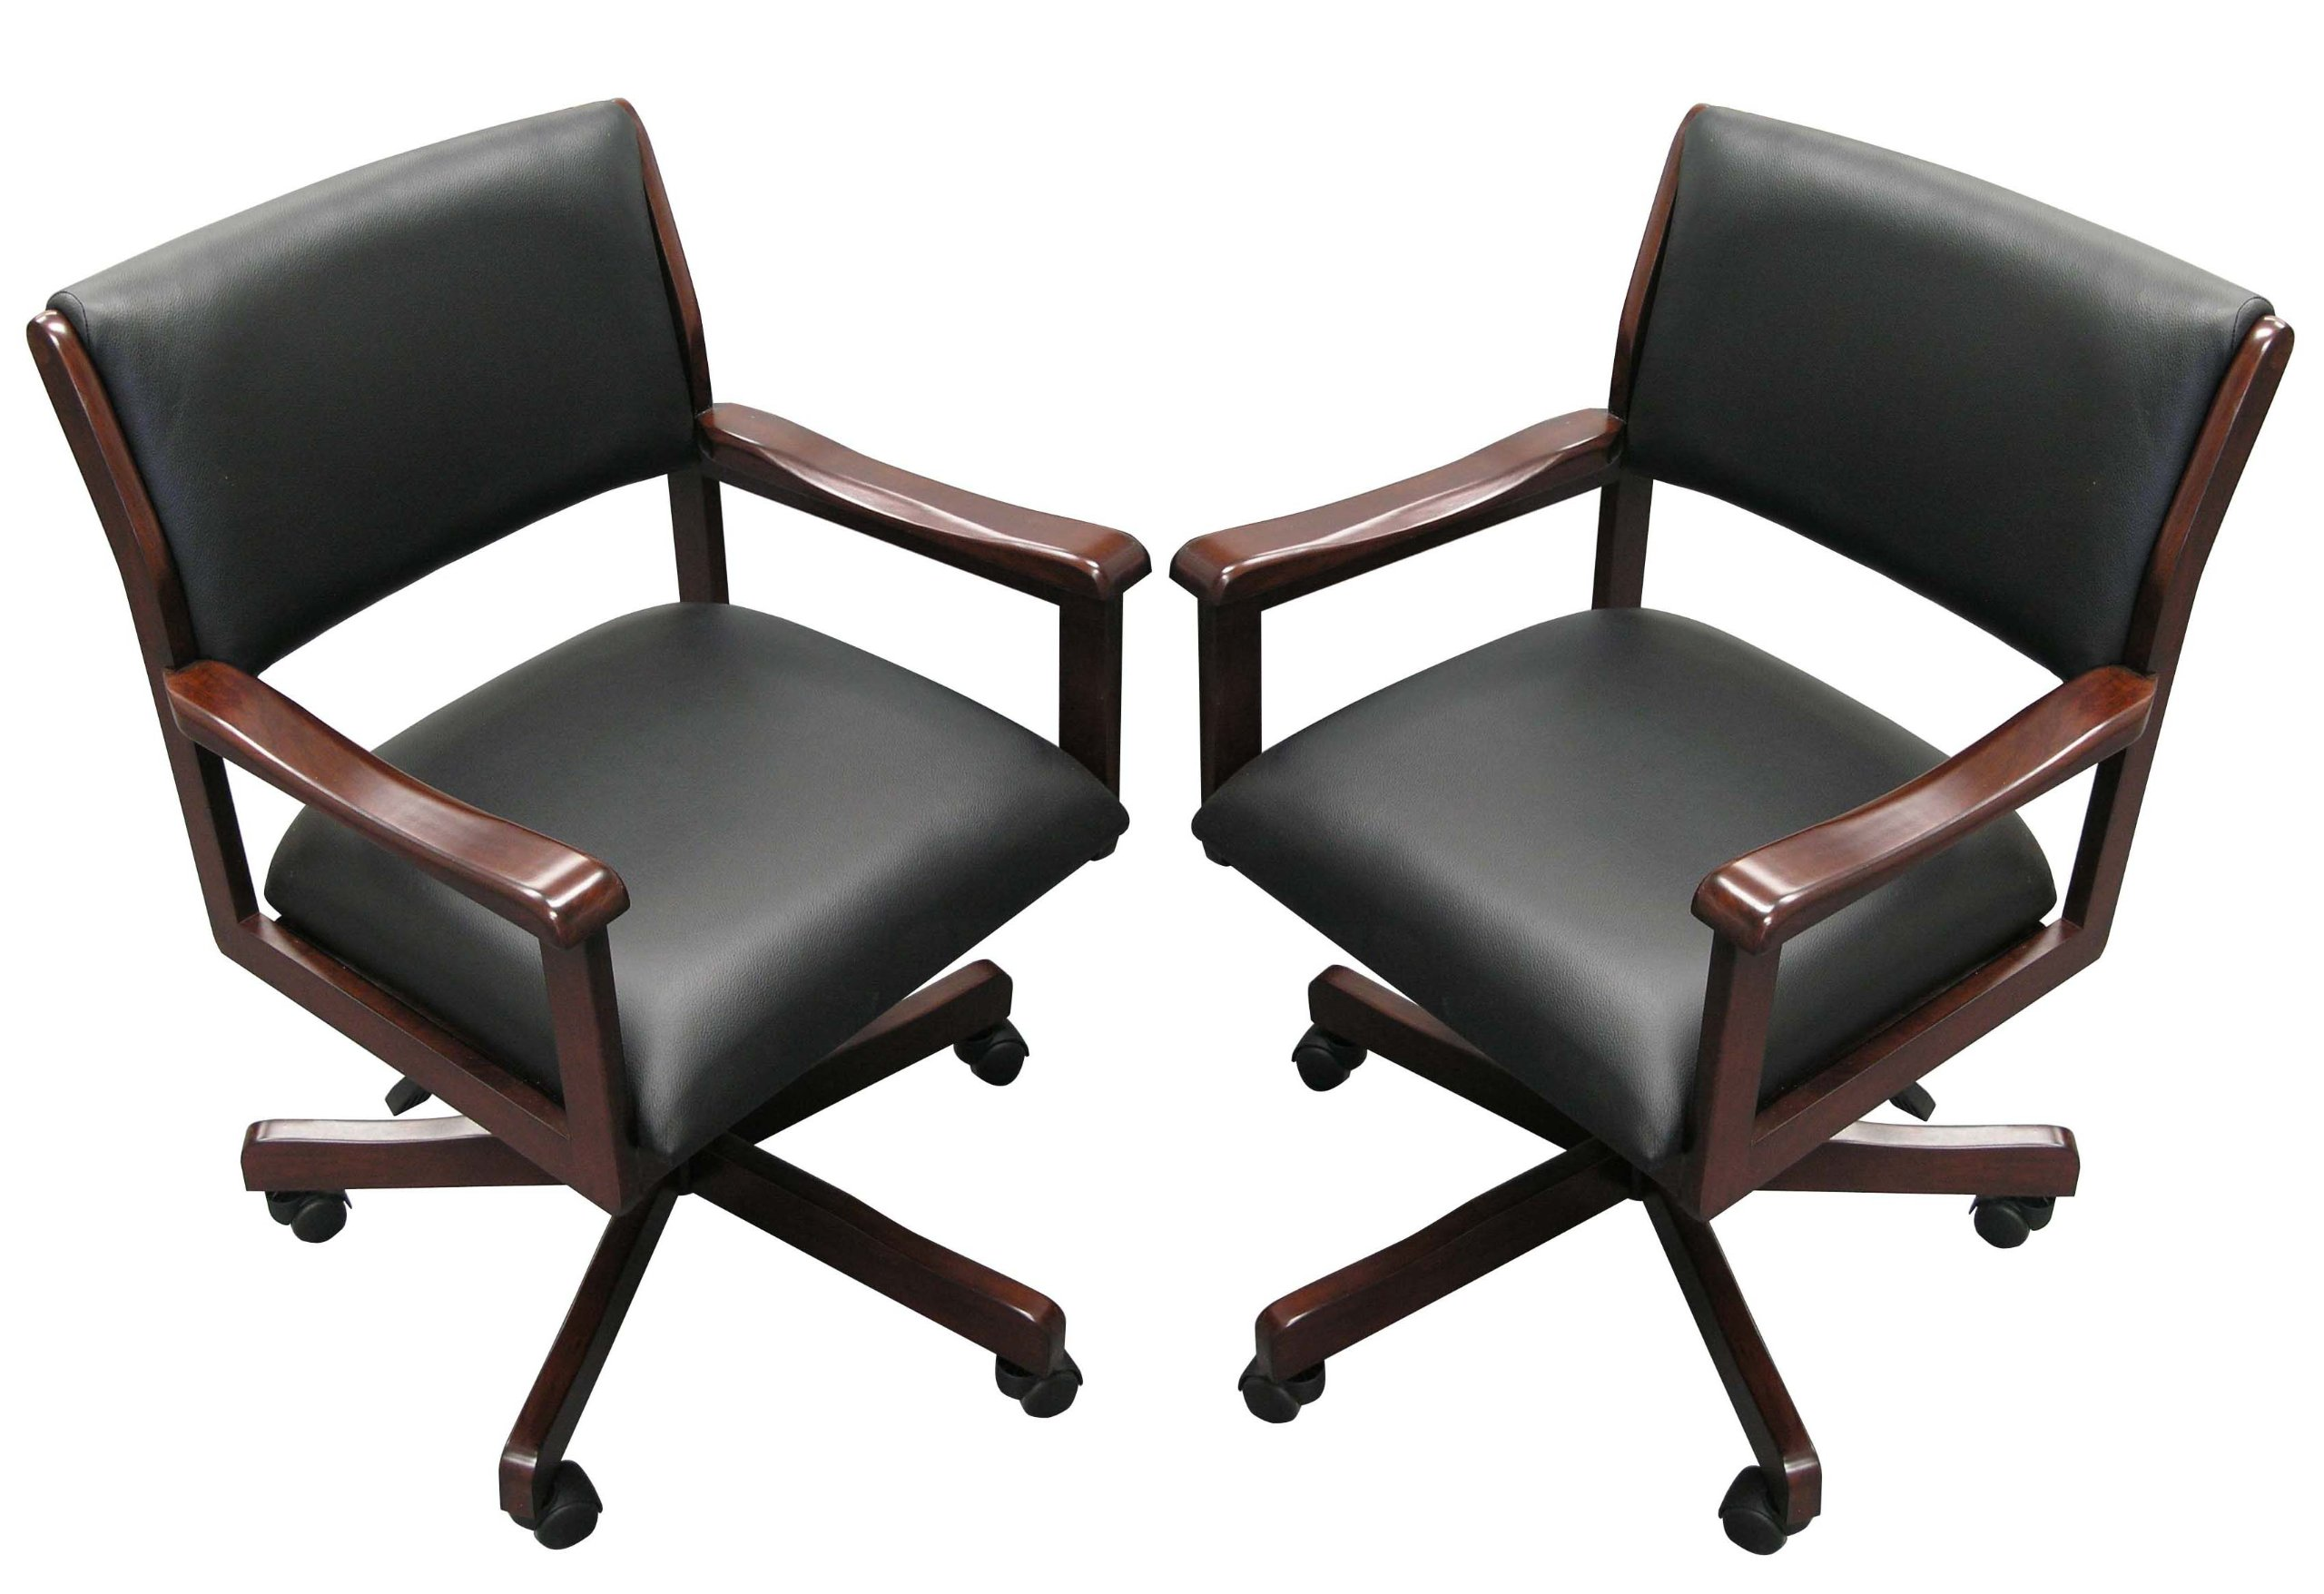 Two Signature Game Chairs (Mahogany)